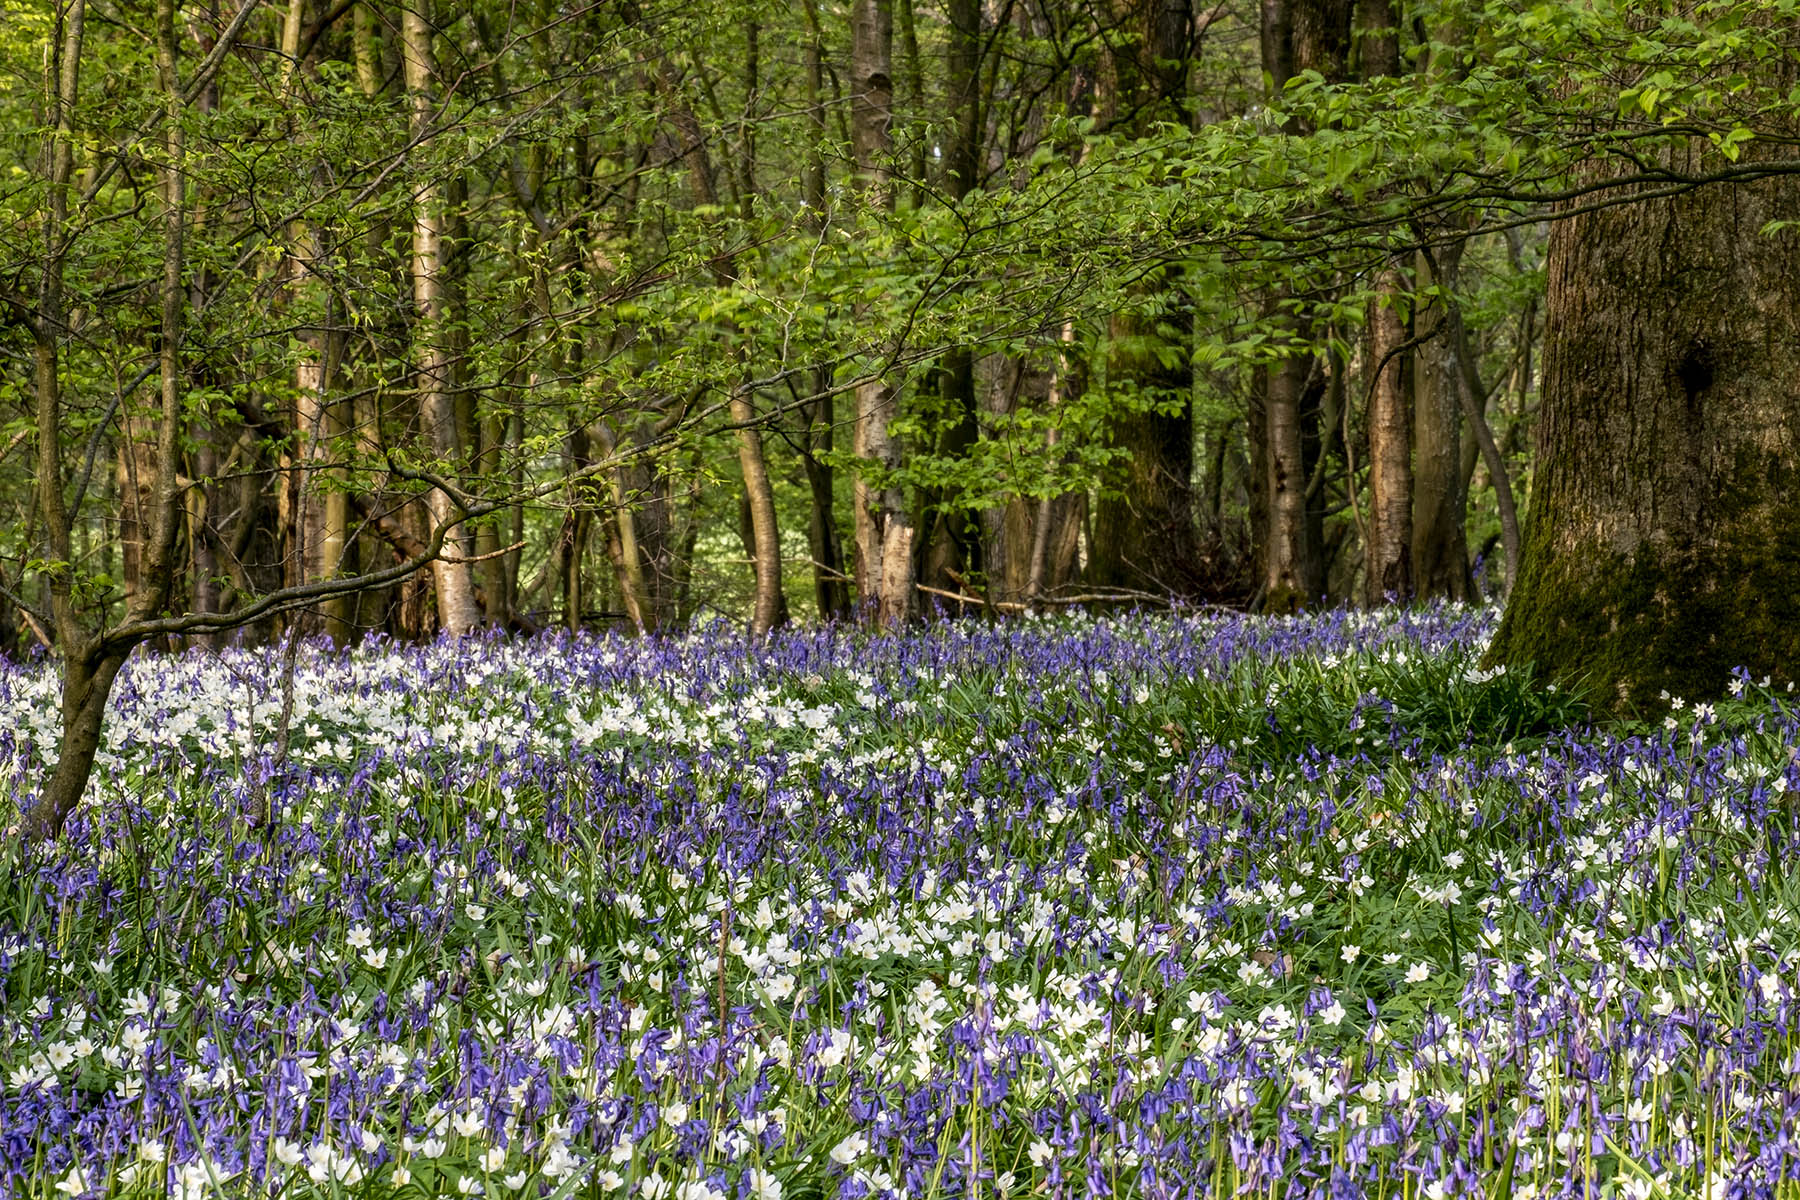 Wood anemones and bluebells